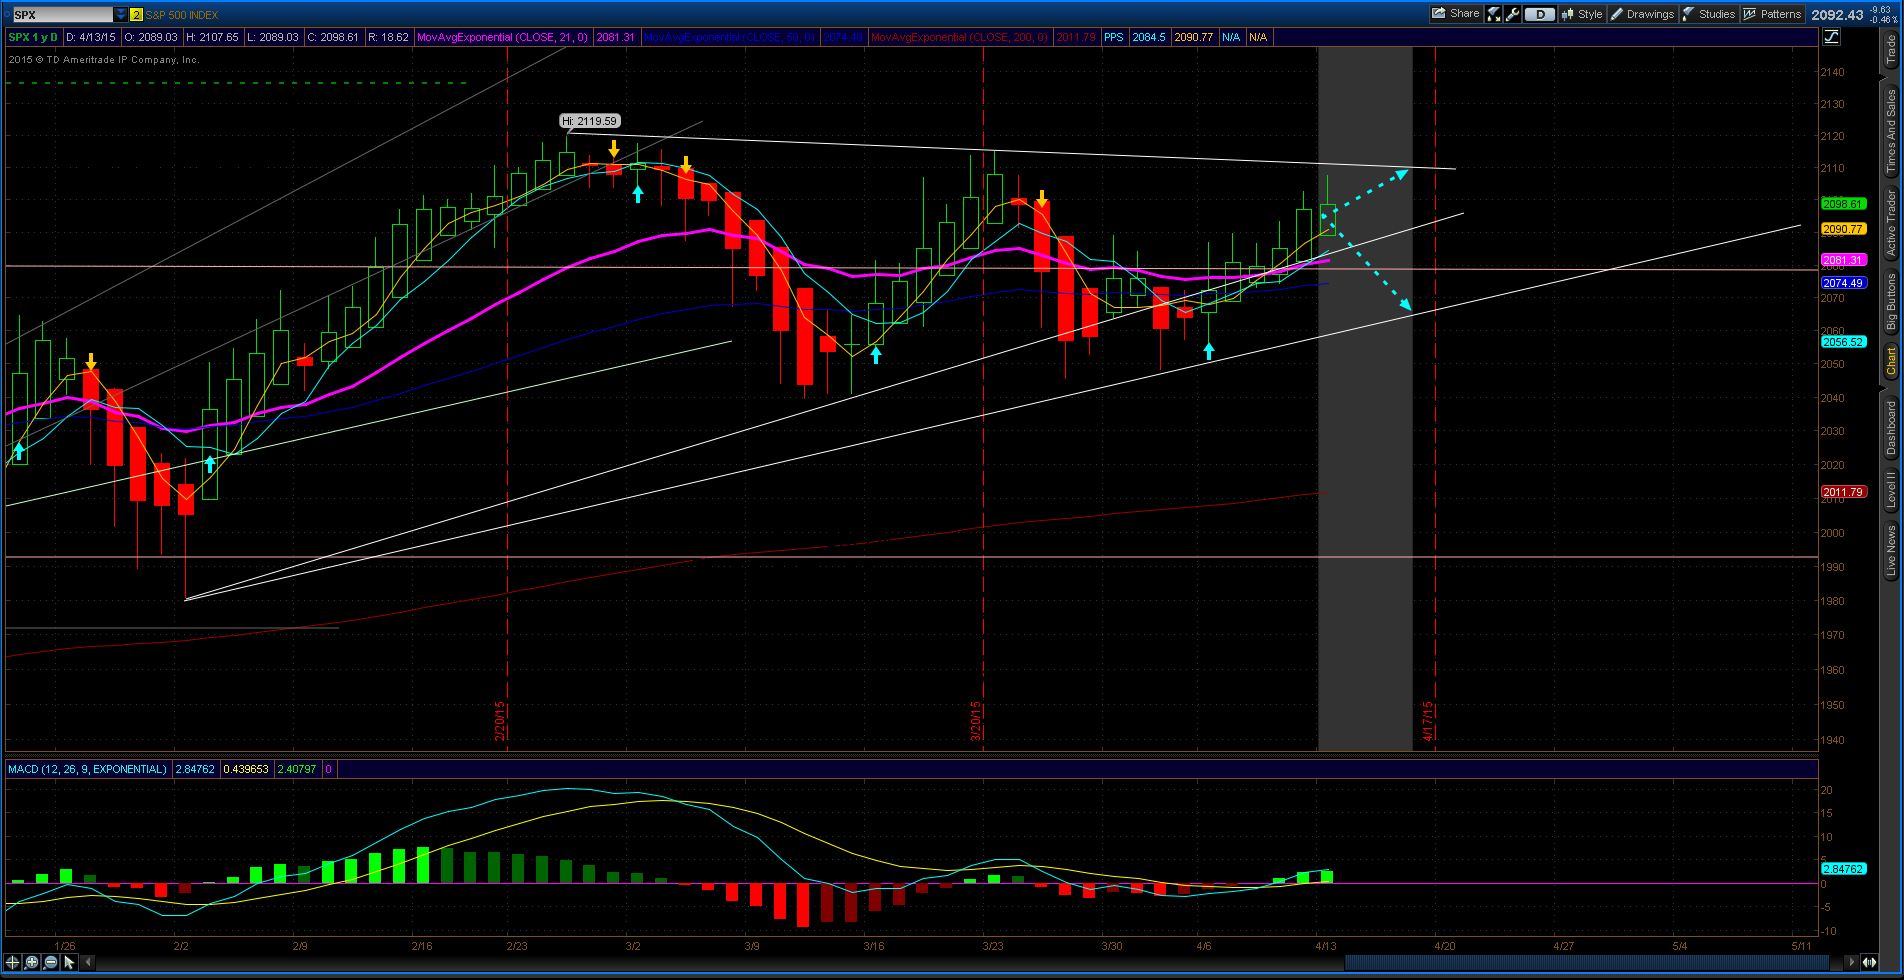 SPX expected move